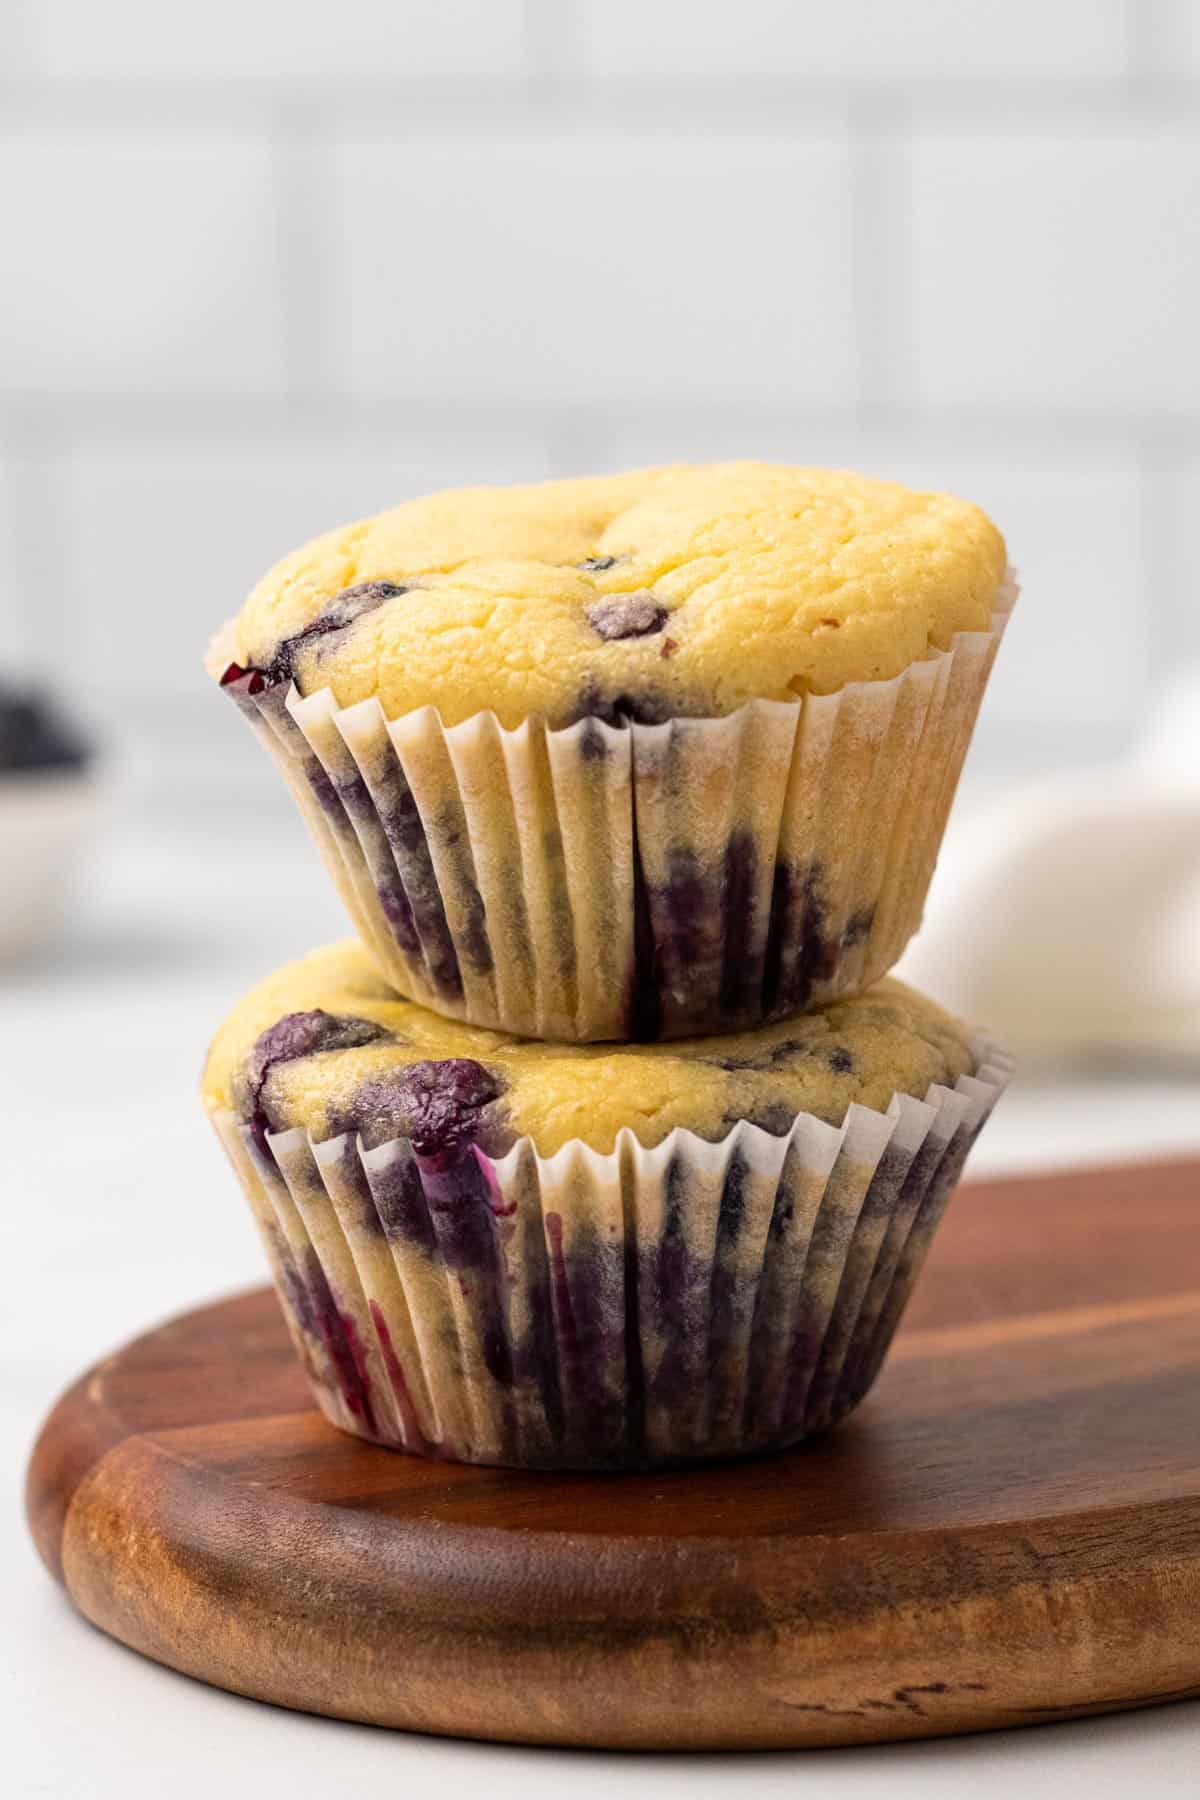 Stack of two Blueberry Muffins (with Coconut Oil) on a wooden cutting board